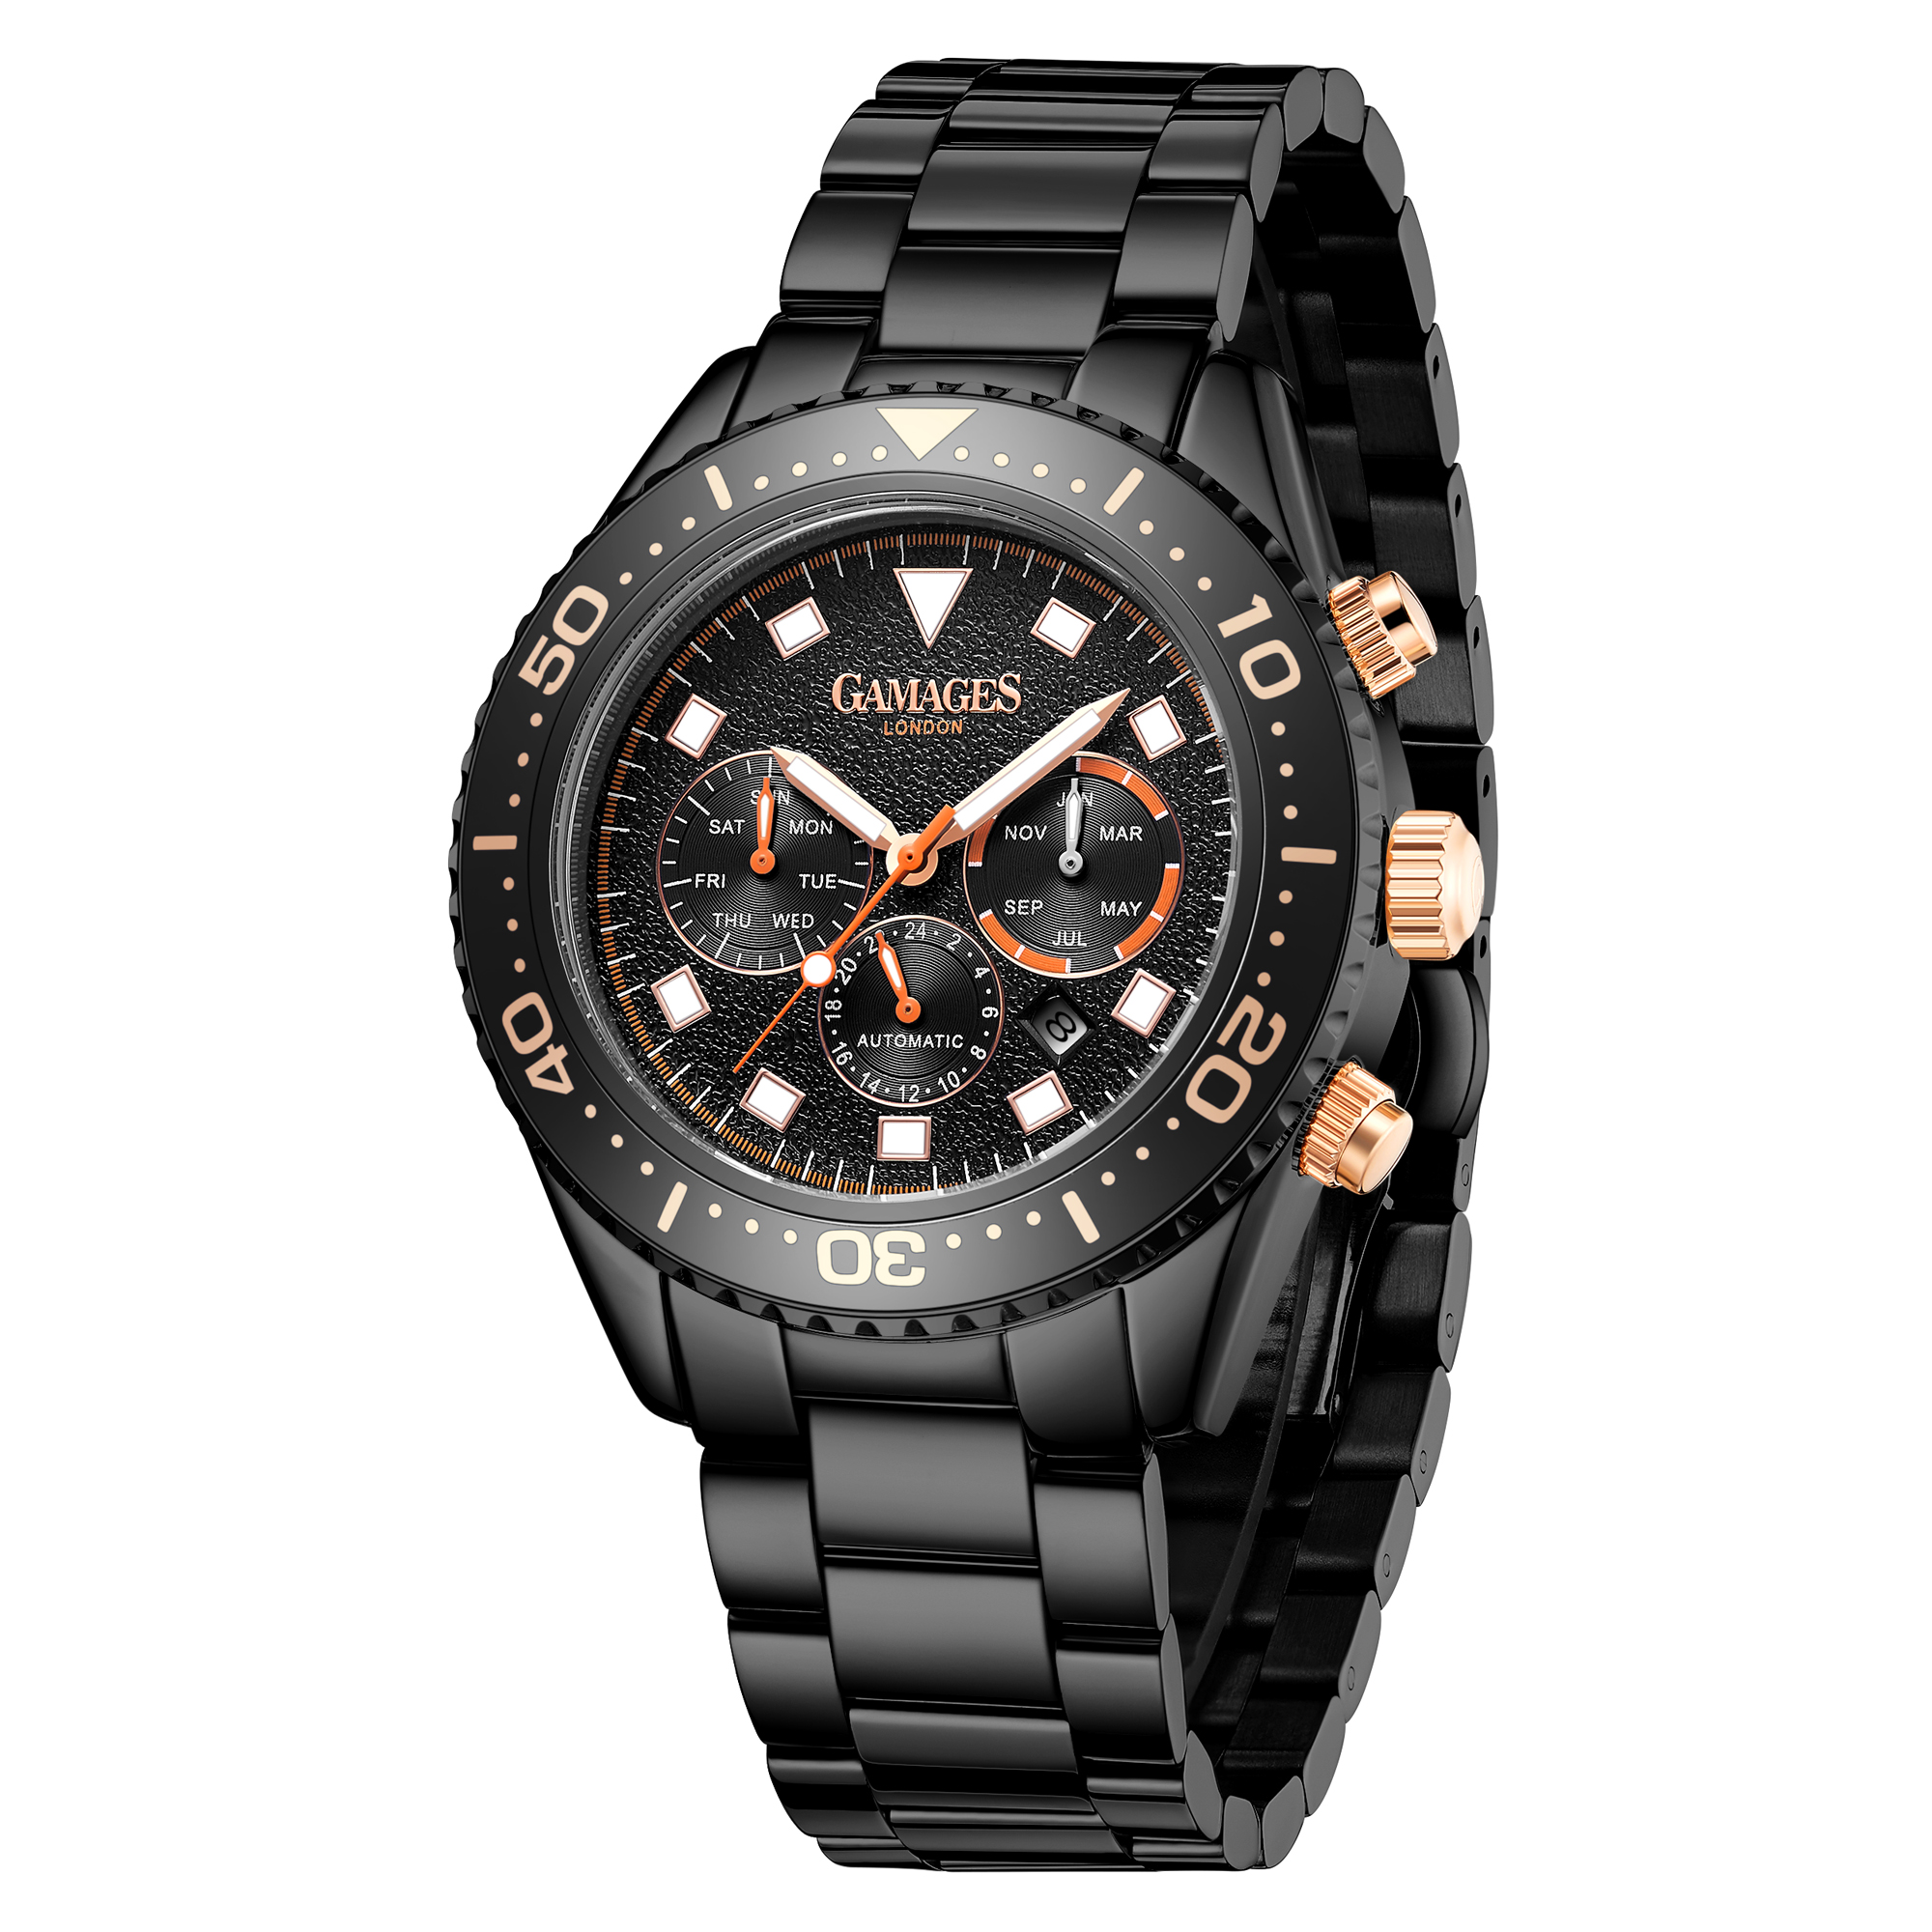 Limited Edition Hand Assembled GAMAGES Allure Automatic Black – 5 Year Warranty & Free Delivery - Image 3 of 4